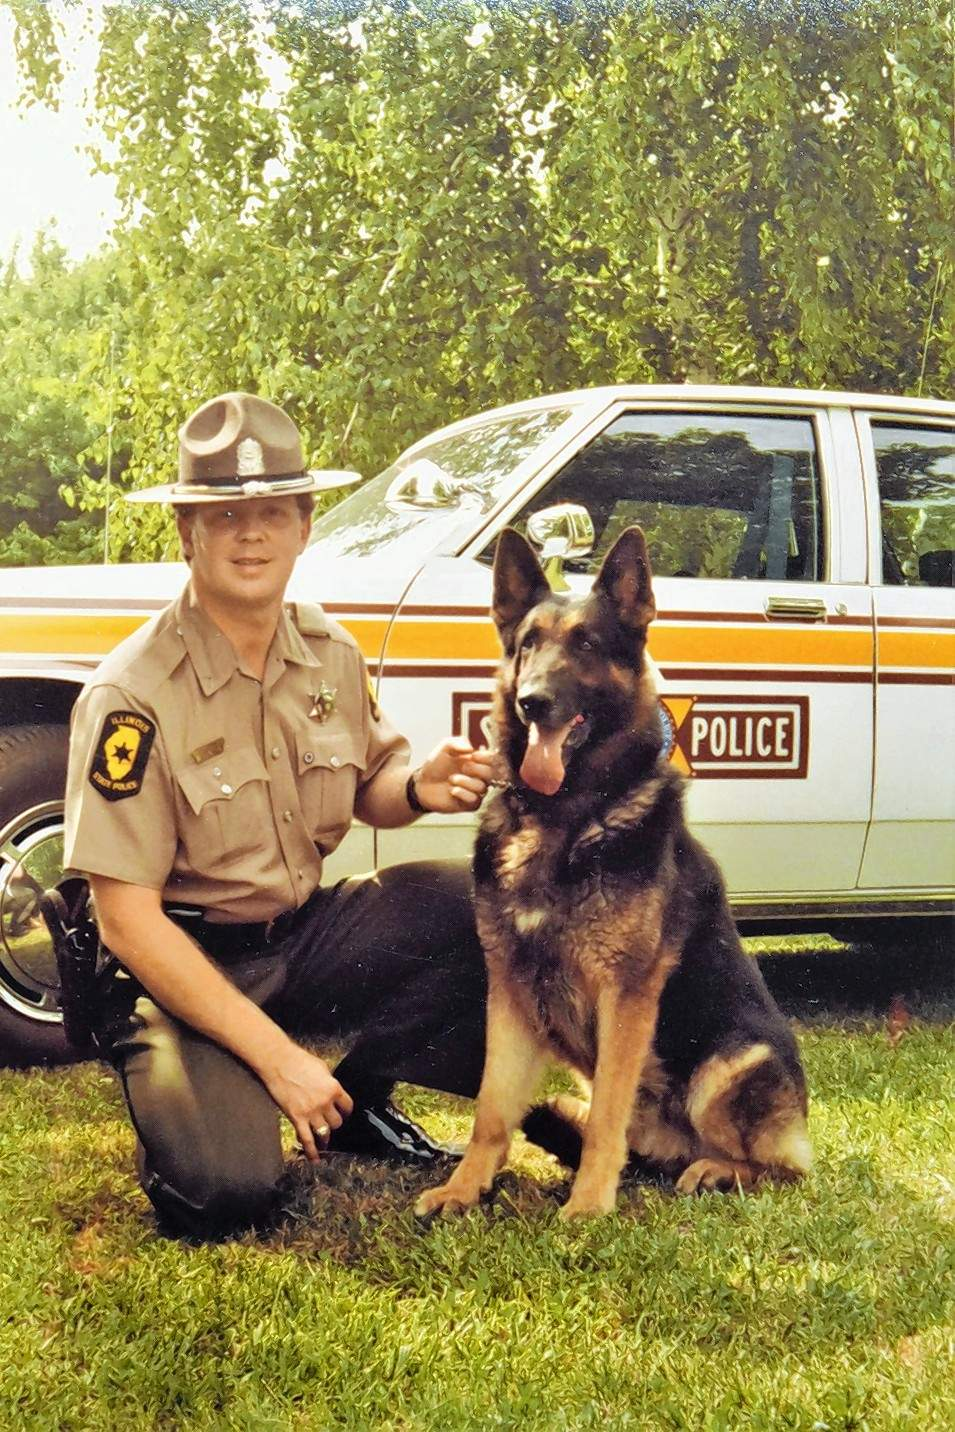 Keith Brown pauses for a photo with his K-9 partner Mac.